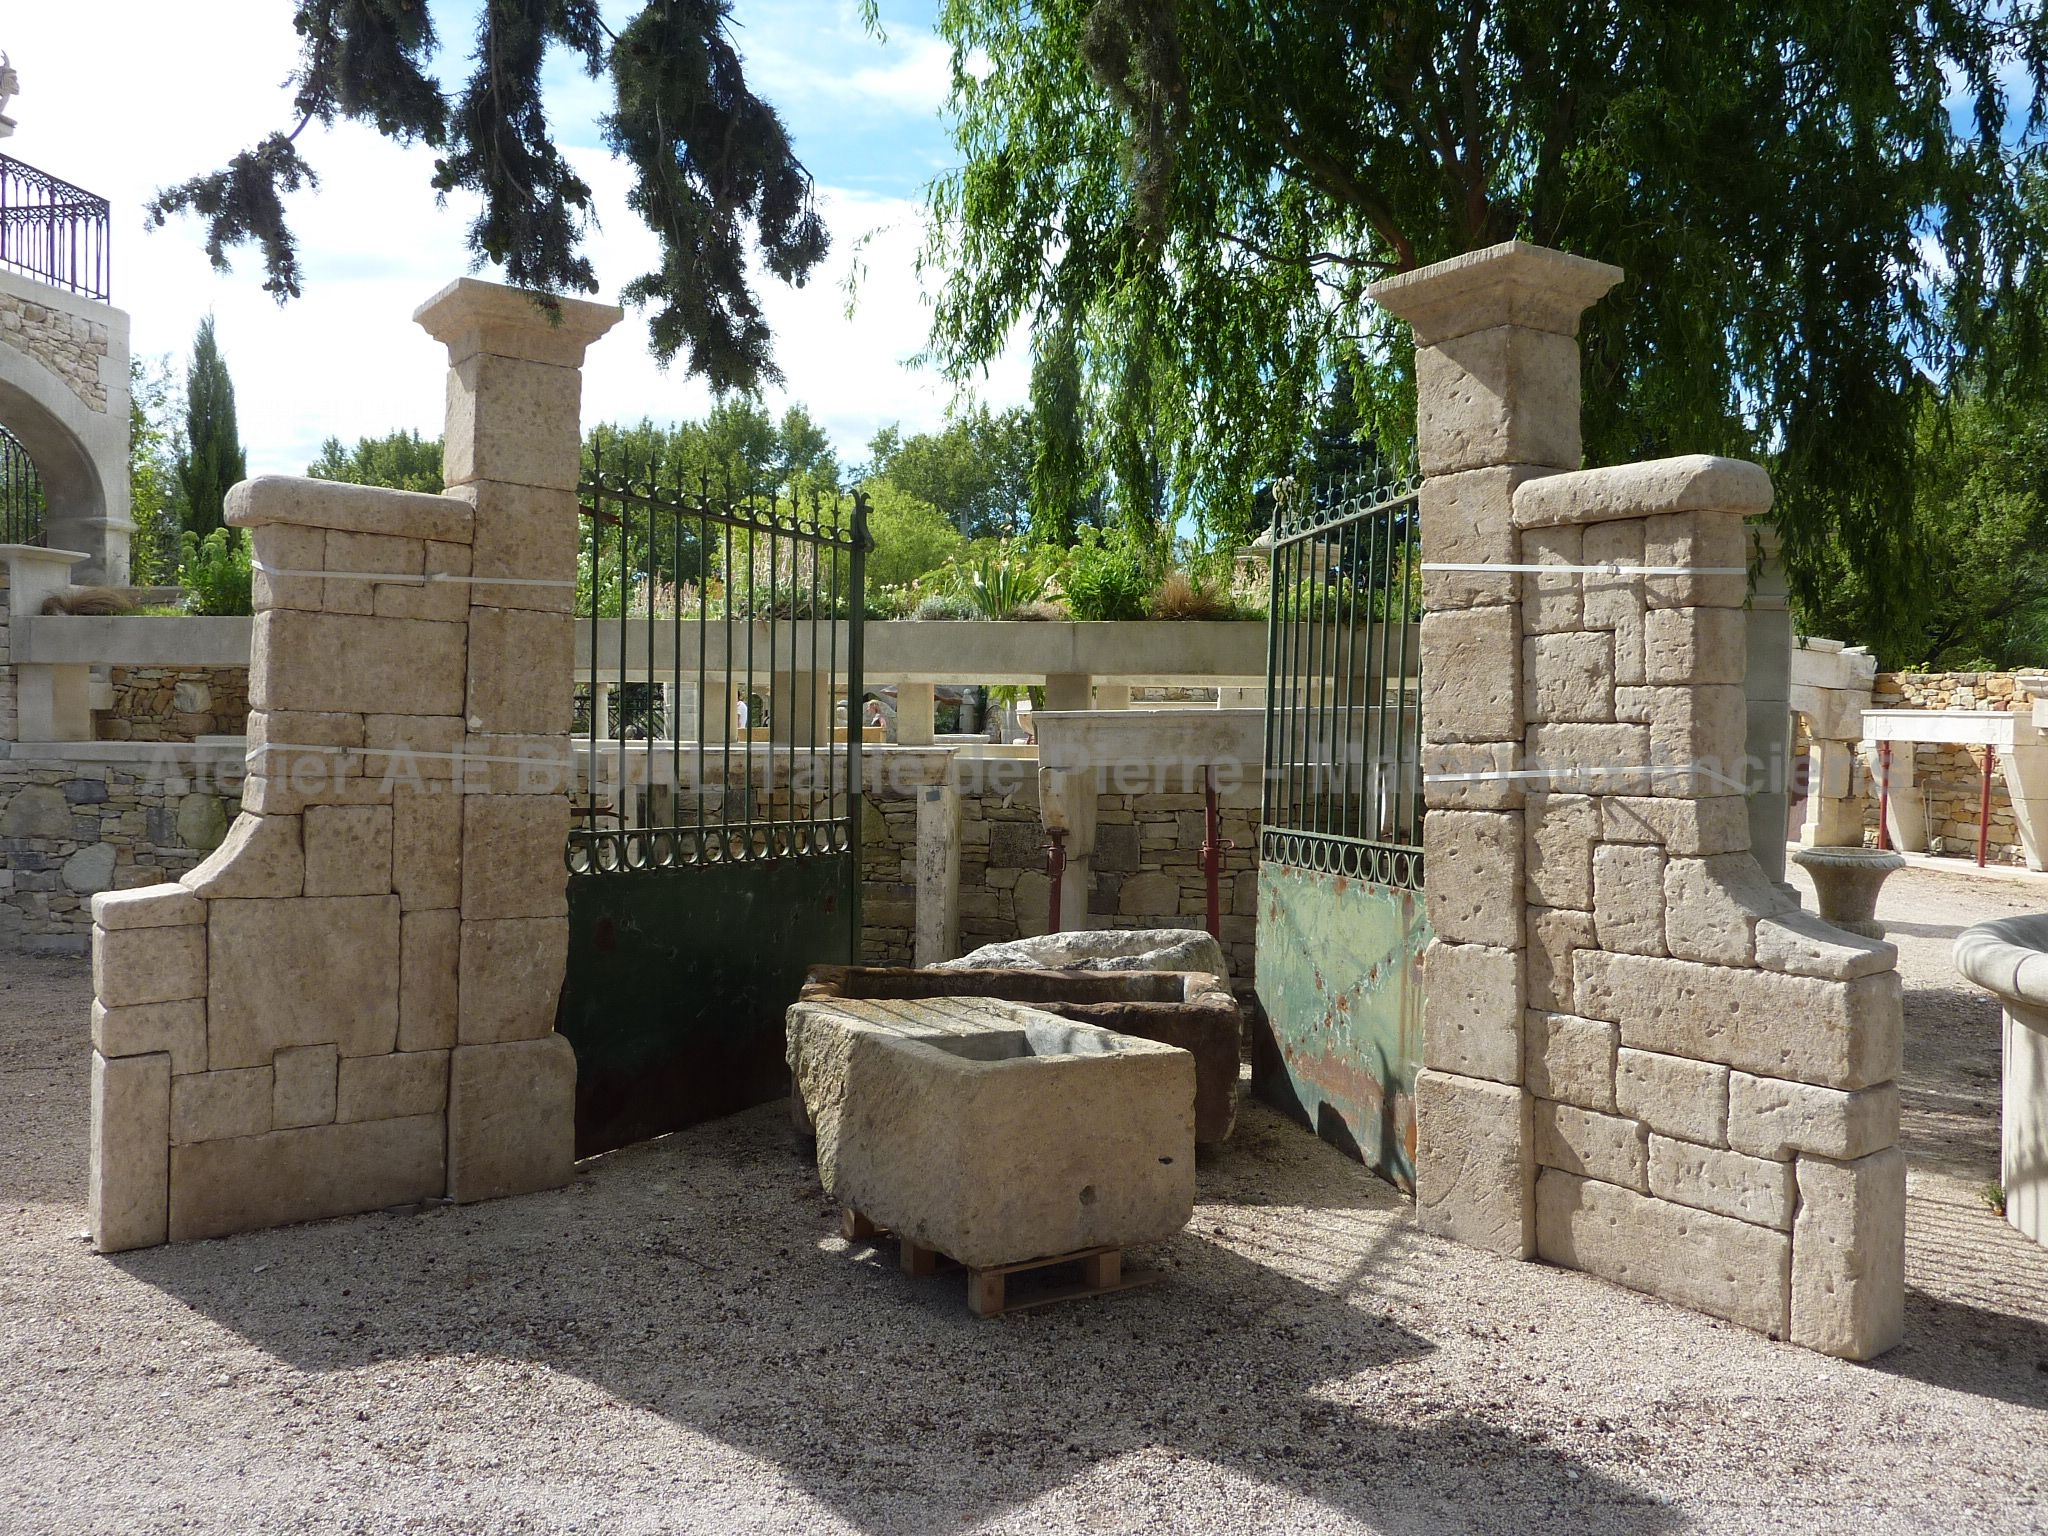 BA57 - Pair of square pillars with side walls carved in limestone